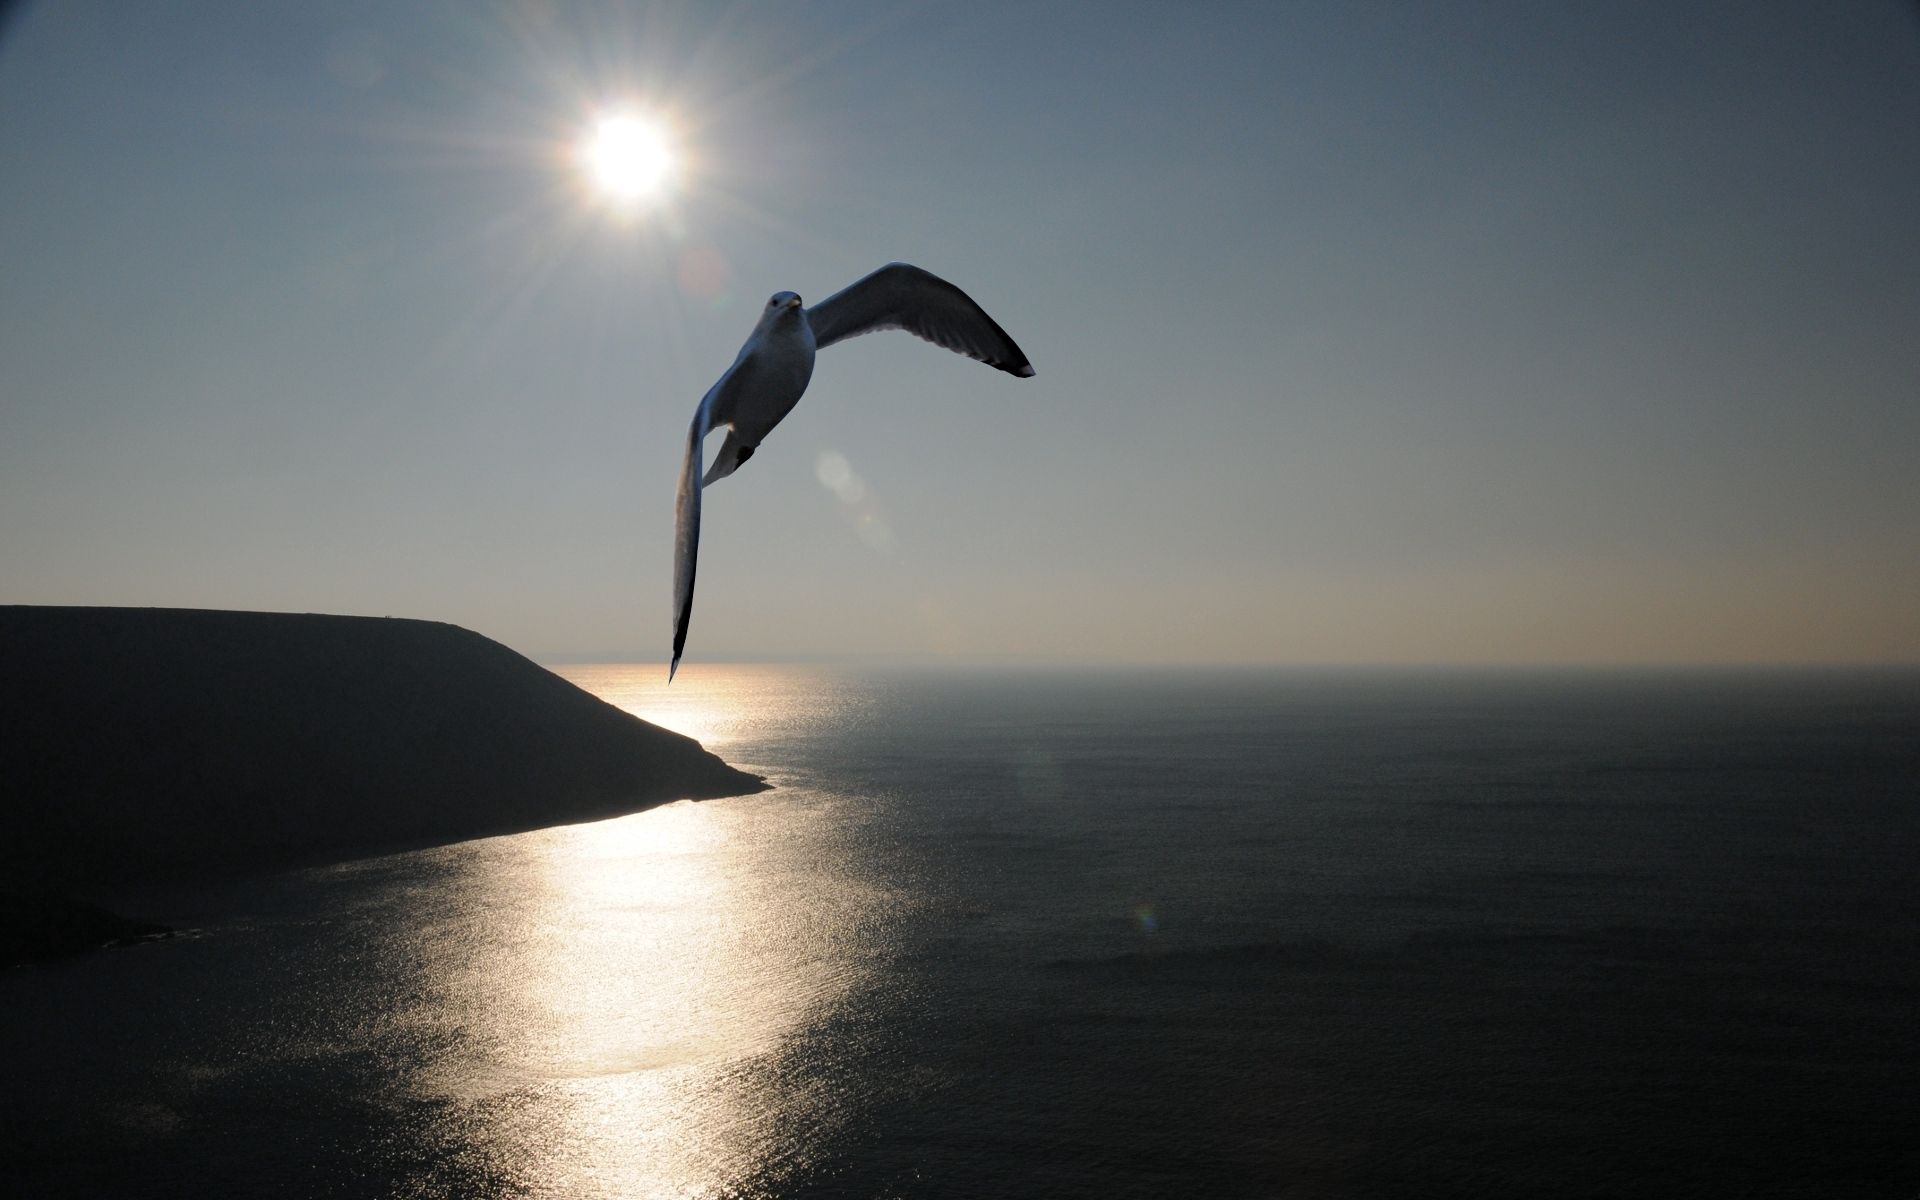 139917 download wallpaper Animals, Gull, Seagull, Sea, Sky, Silhouette, Shadow, Flight, Sweep, Wave screensavers and pictures for free